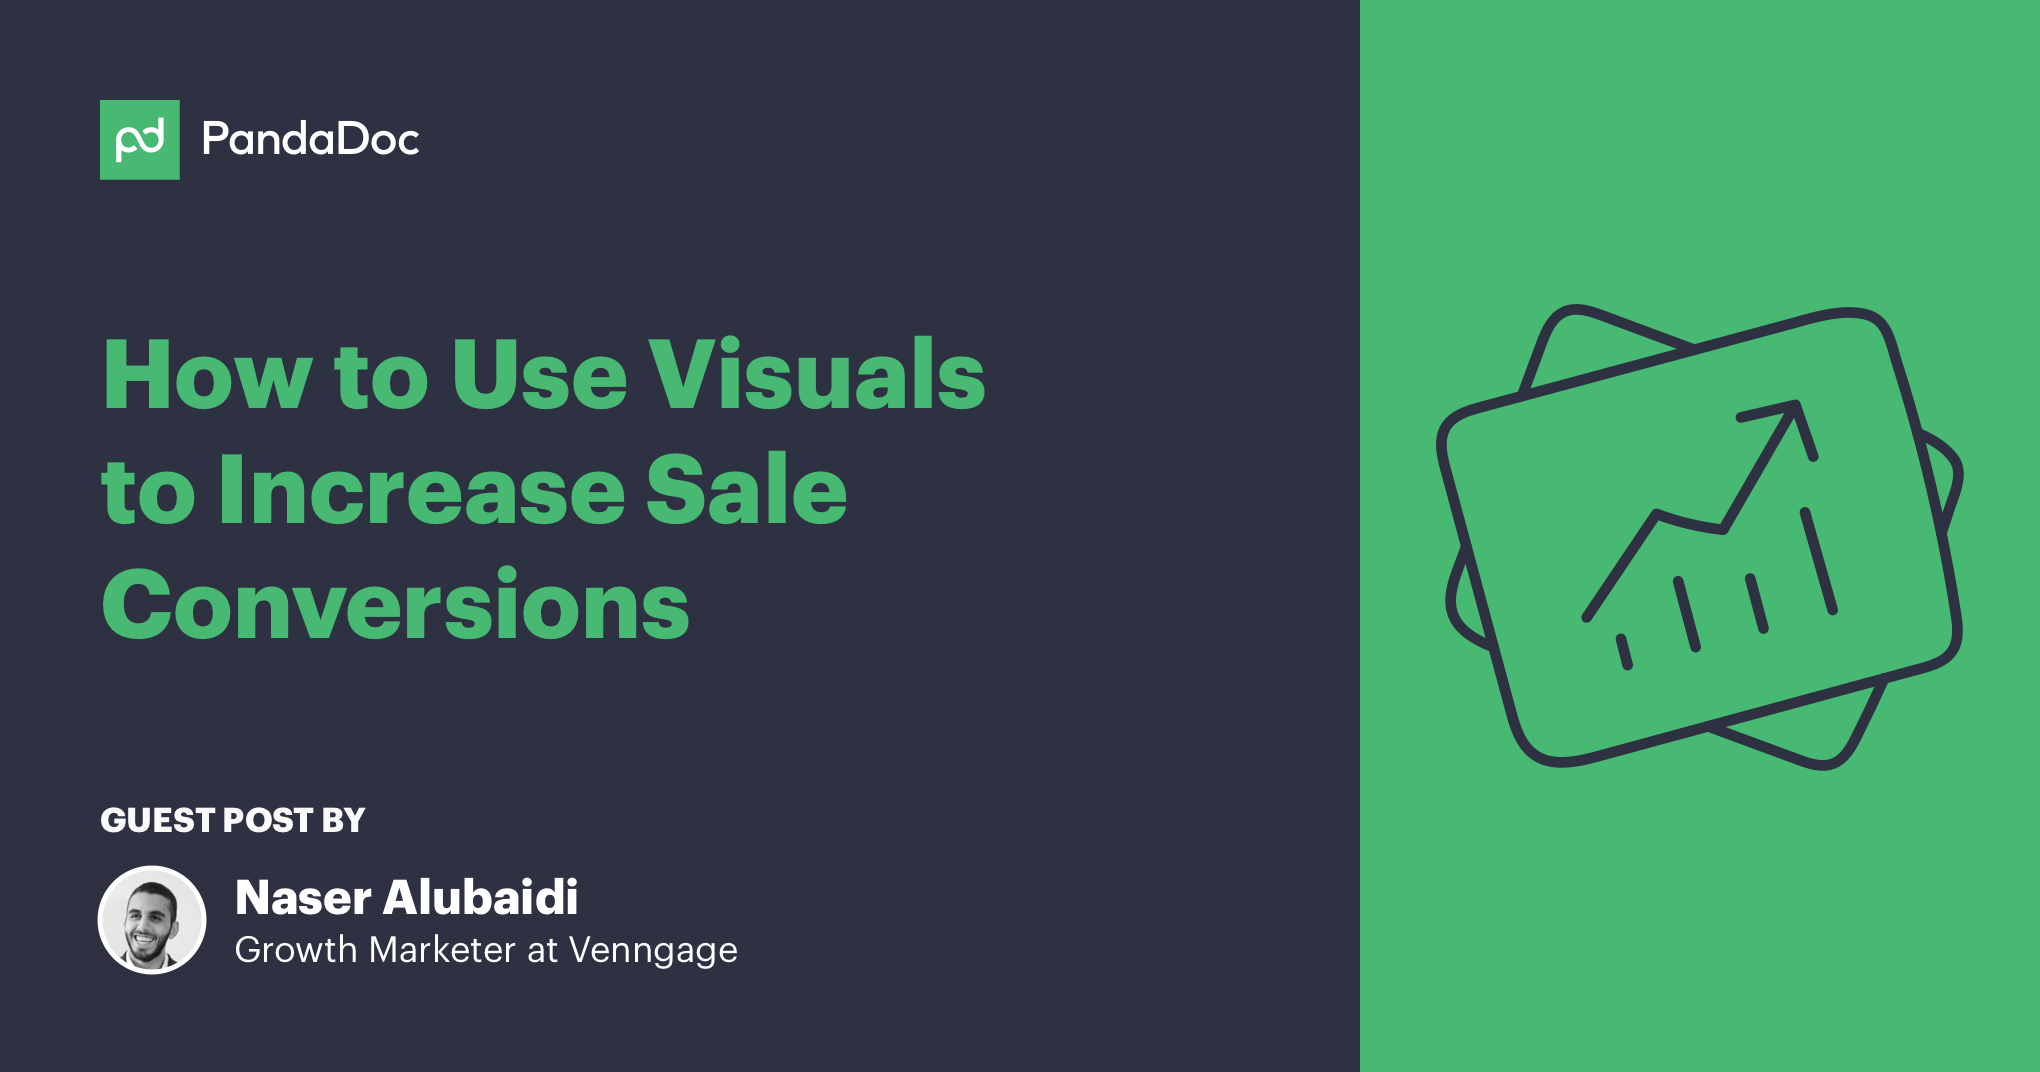 How to use visuals to increase sale conversions